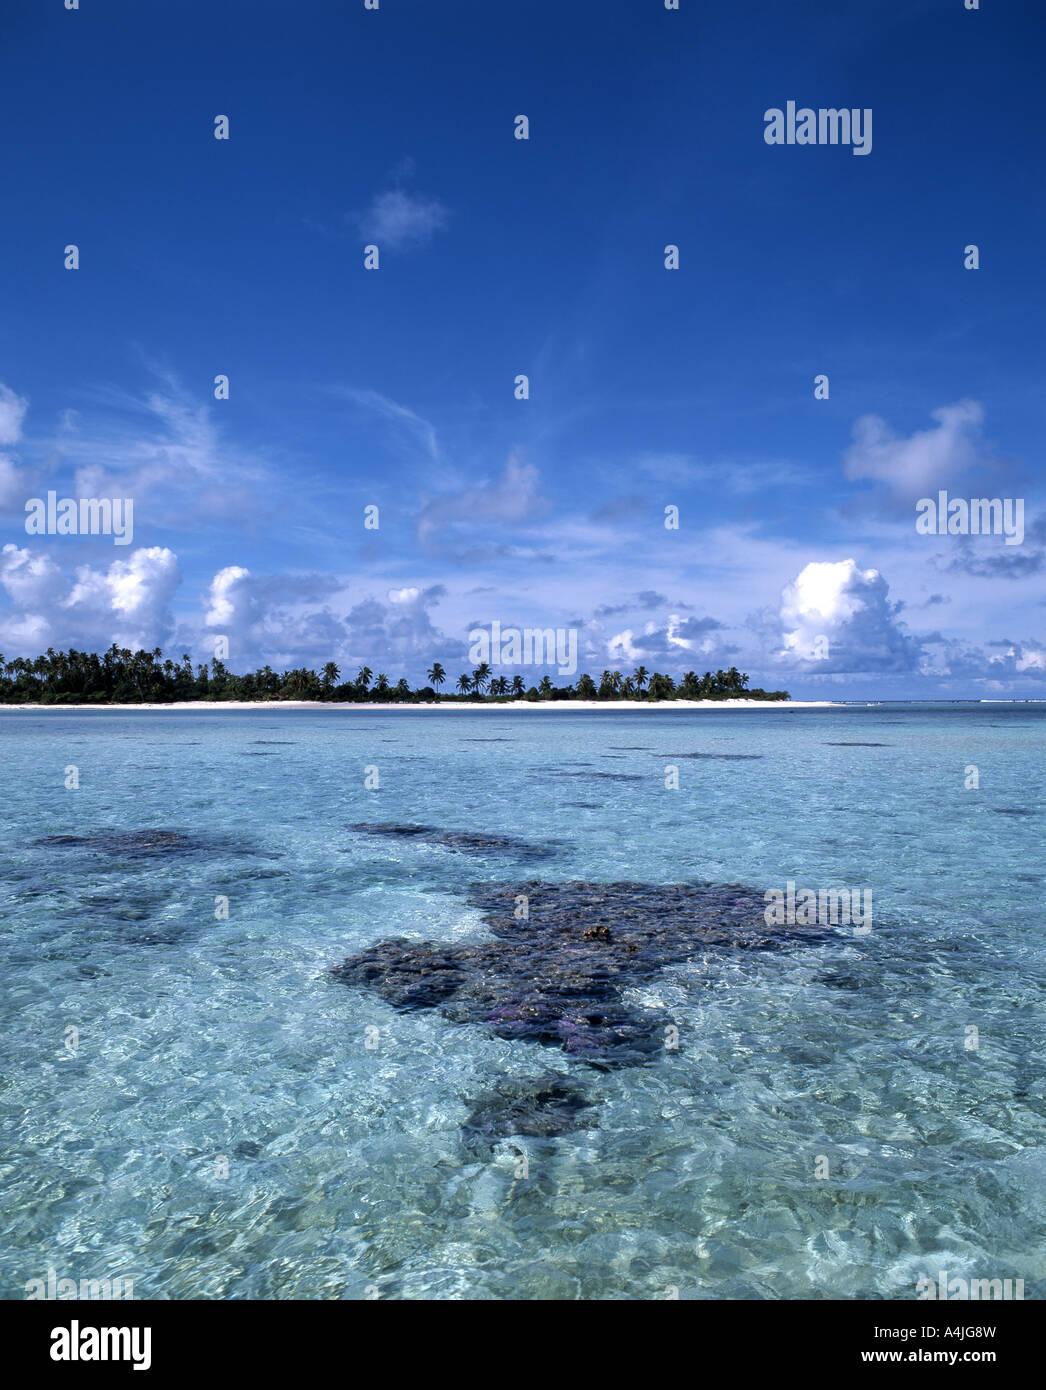 Tropical Island, Aitutaki Atoll, Cook Islands, South Pacific Ocean - Stock Image